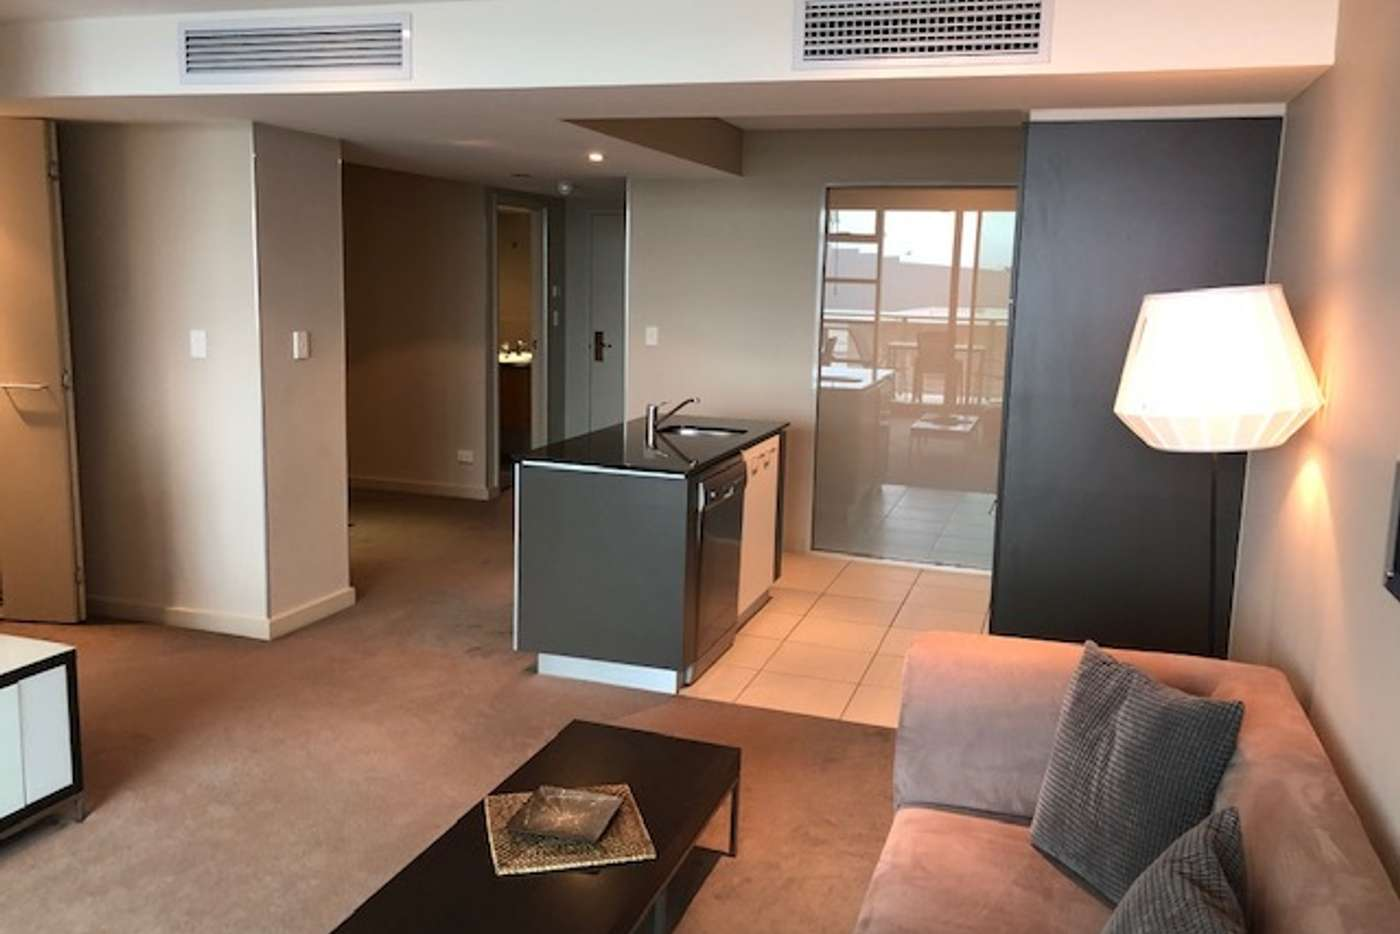 Sixth view of Homely apartment listing, 701/96 North Terrace, Adelaide SA 5000